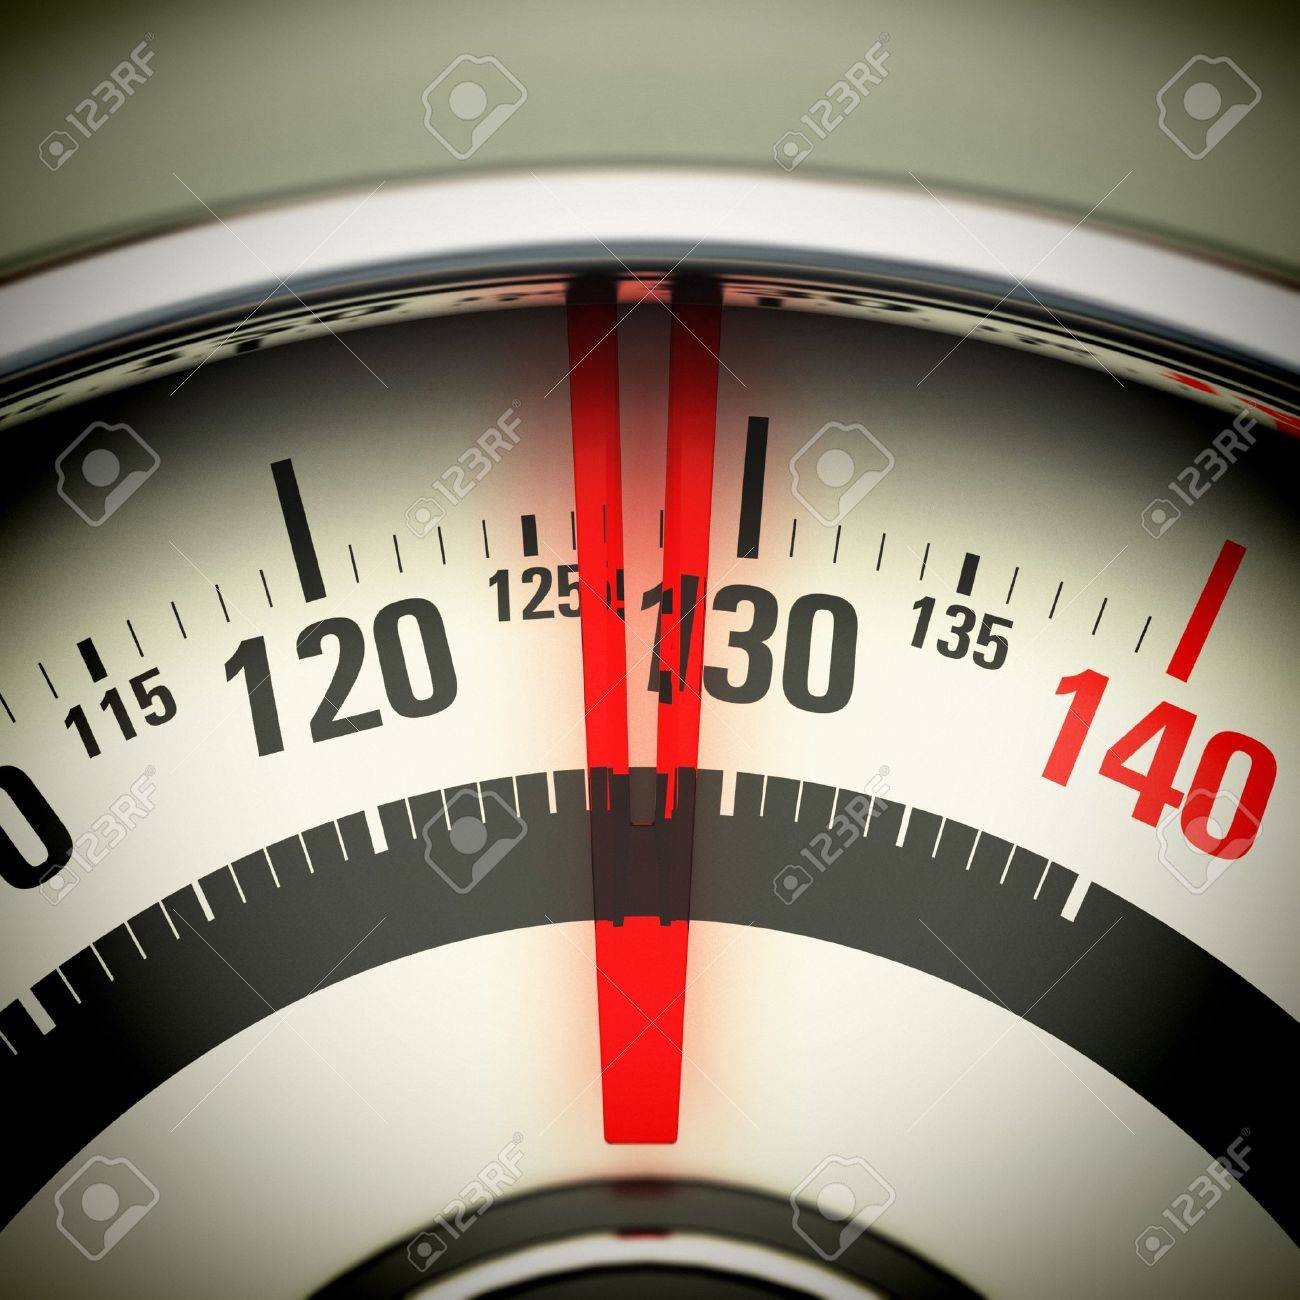 Bathroom scale view from top with the needle pointing 130 Kg Stock Photo - 21927130